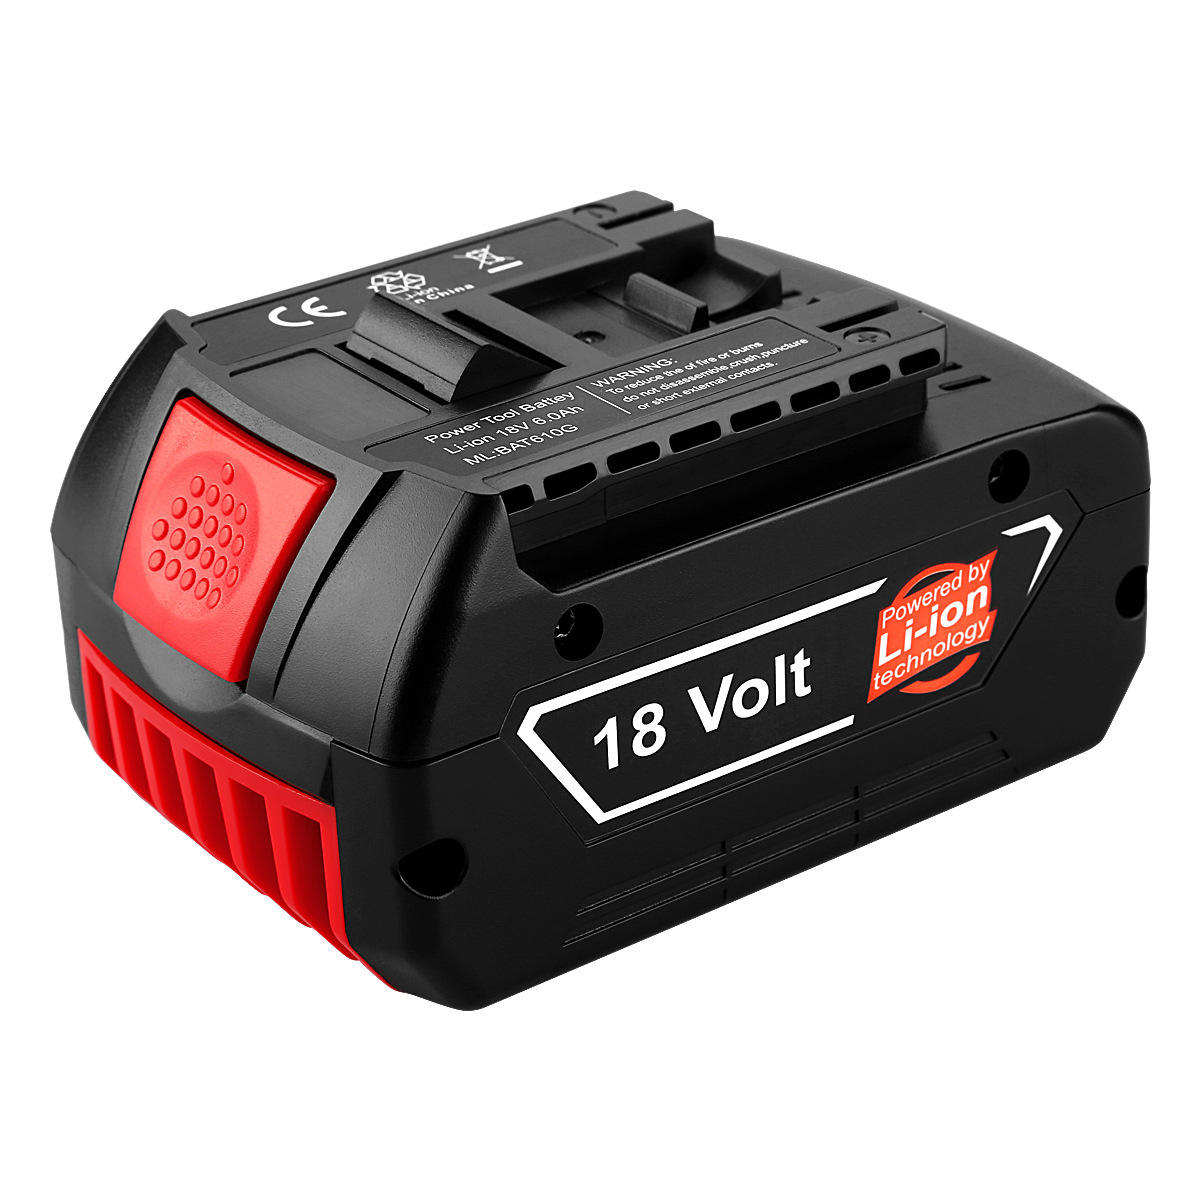 18V Power Tool Battery For BOSCH Cordless Impact Hammer Drill Li-ion Replacement Rechargeable 4000mAh Portable Battery Accu